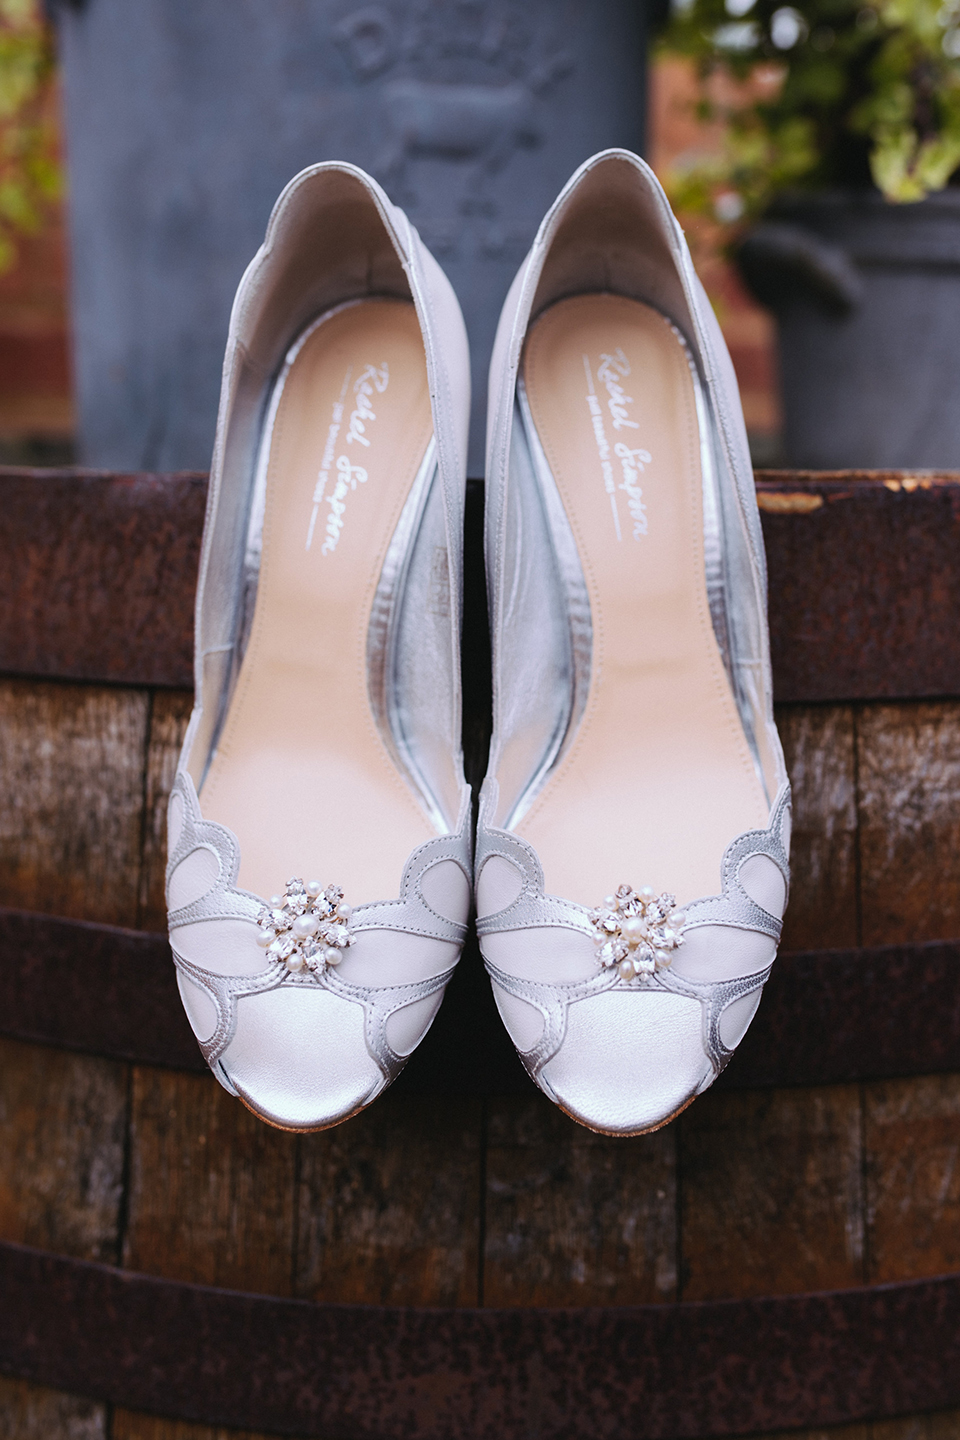 The bride wore silve Rachel Simpson wedding shoes for her wedding at Bassmead Manor Barns